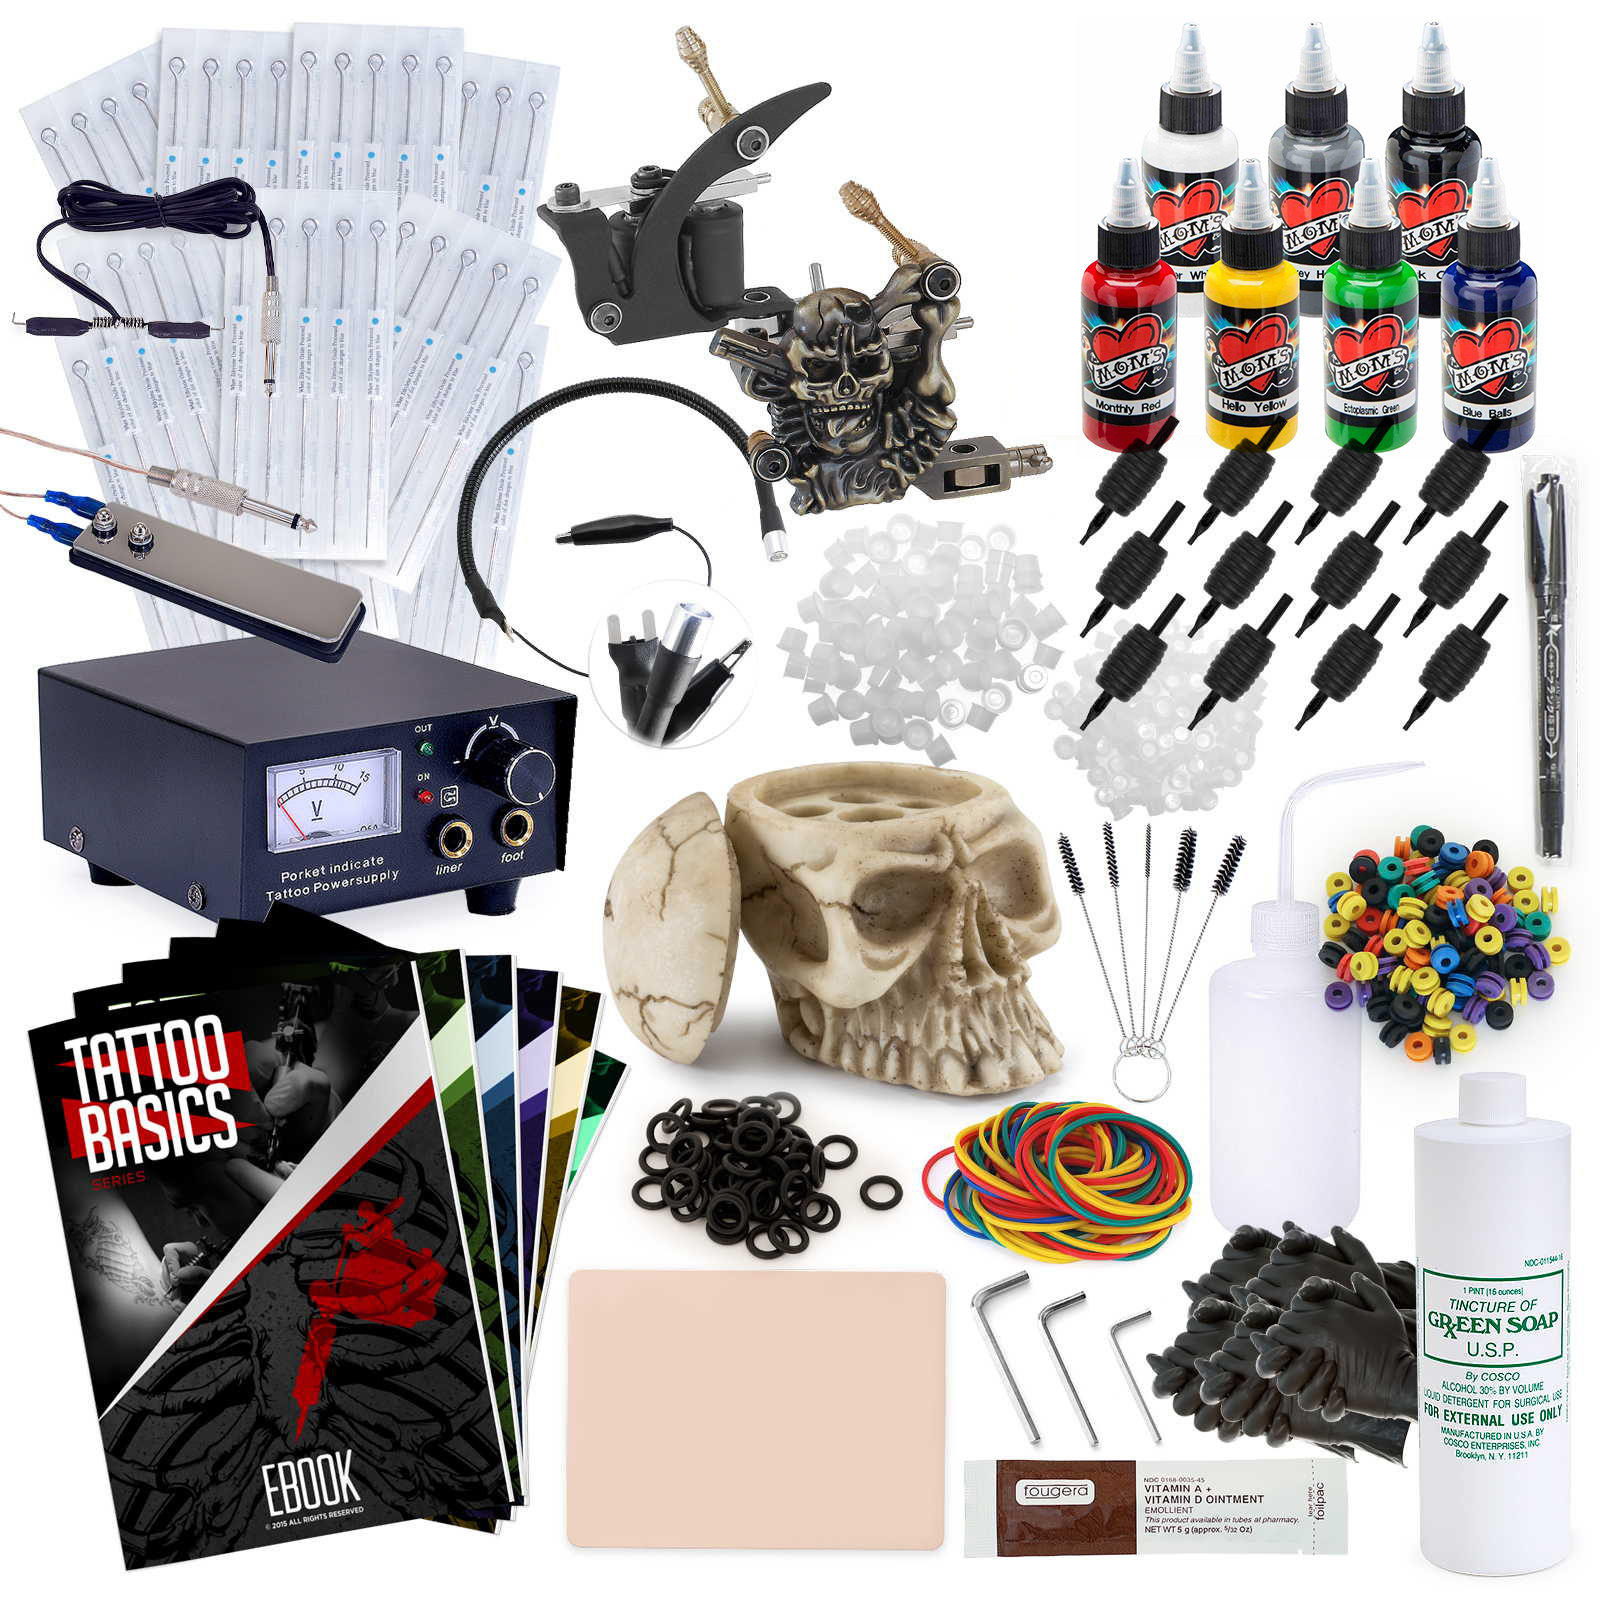 Rehab Ink Complete Tattoo Set w/ 2 Machines, Power Supply...